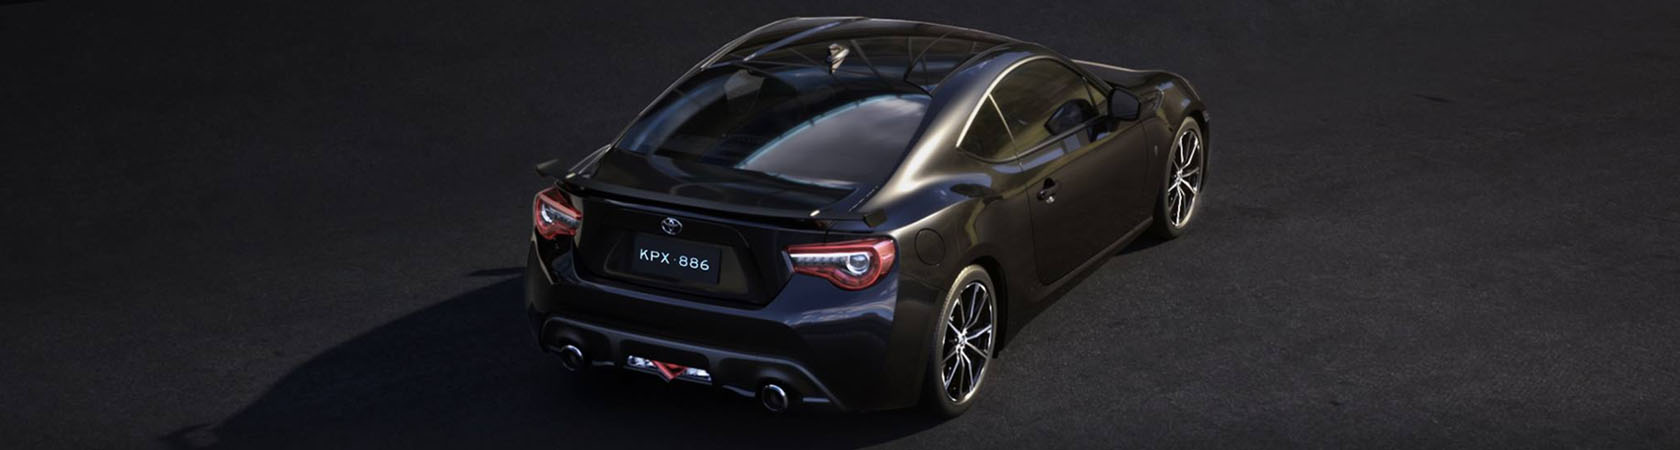 Callide Valley Toyota 86